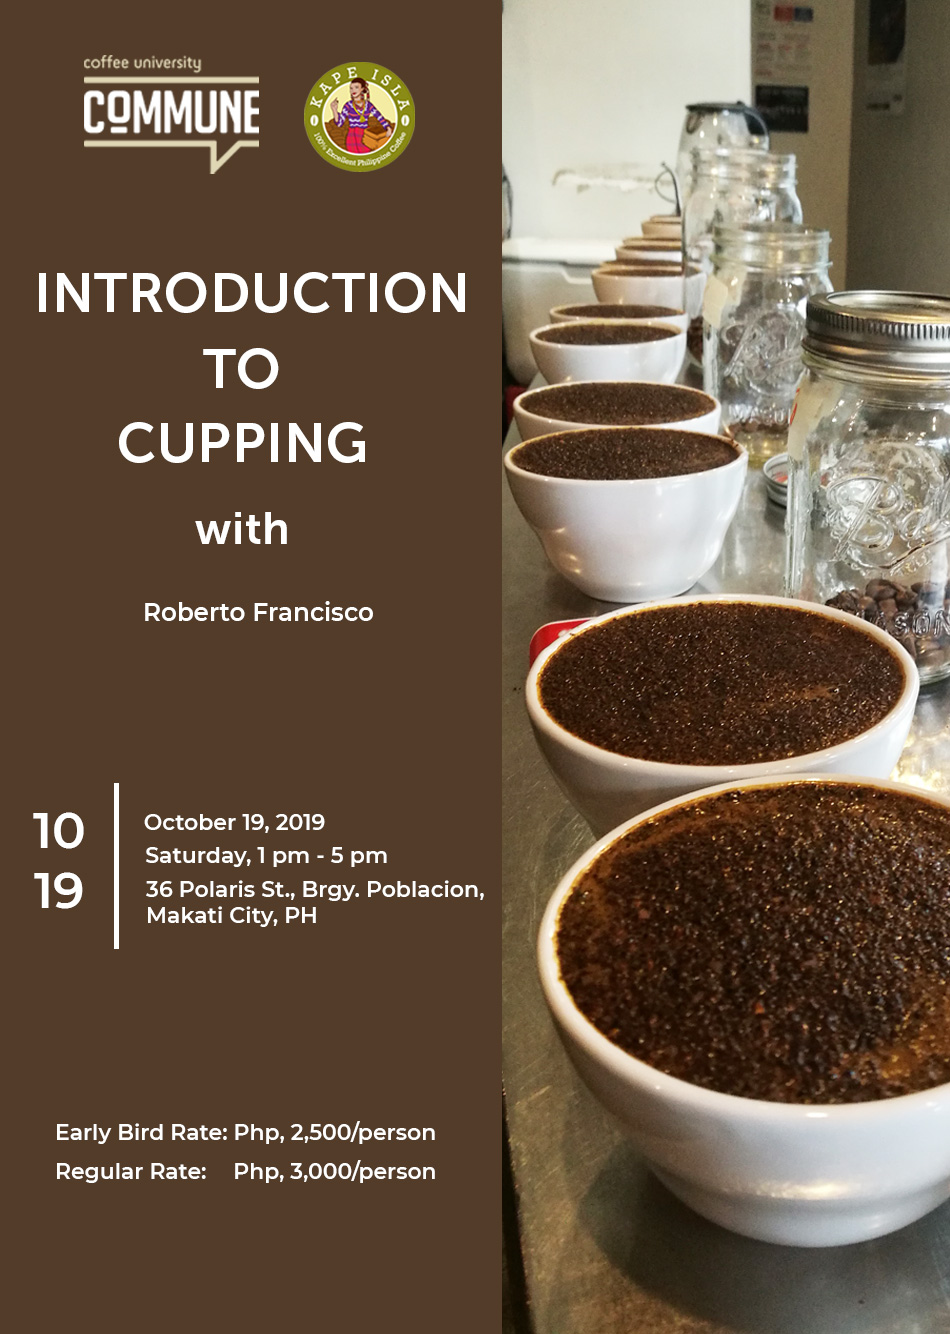 Introduction to Cupping